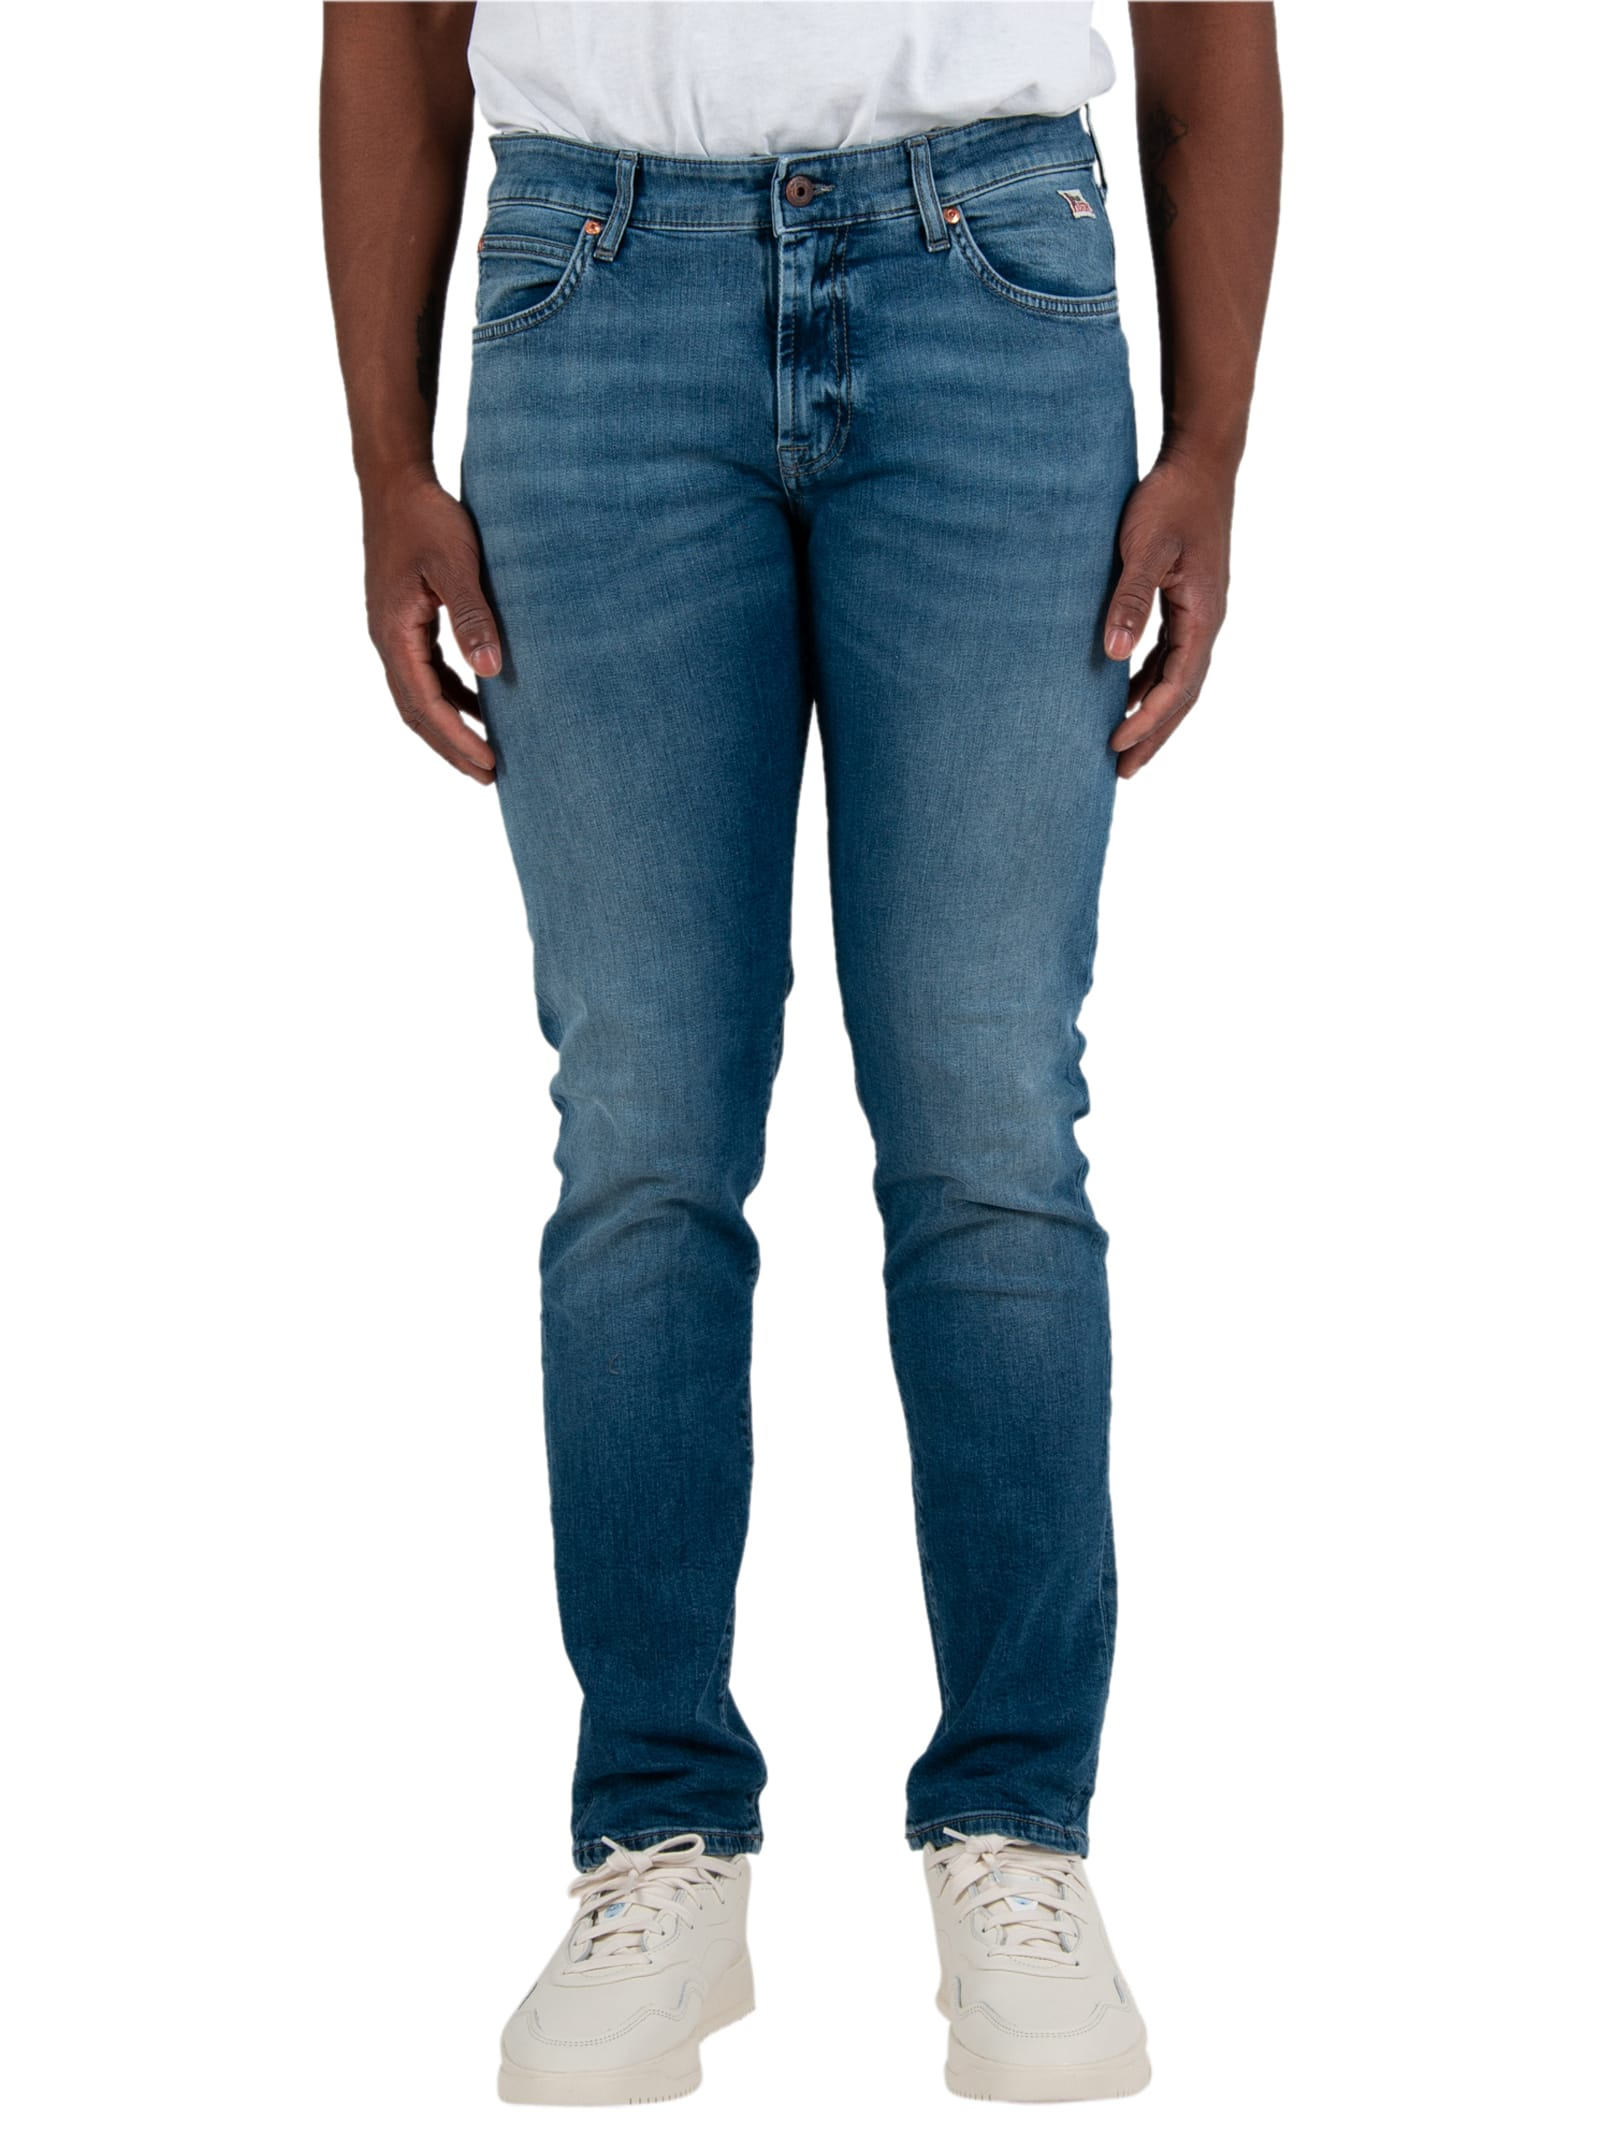 Roy Rogers 517 Smart In Denim Medio